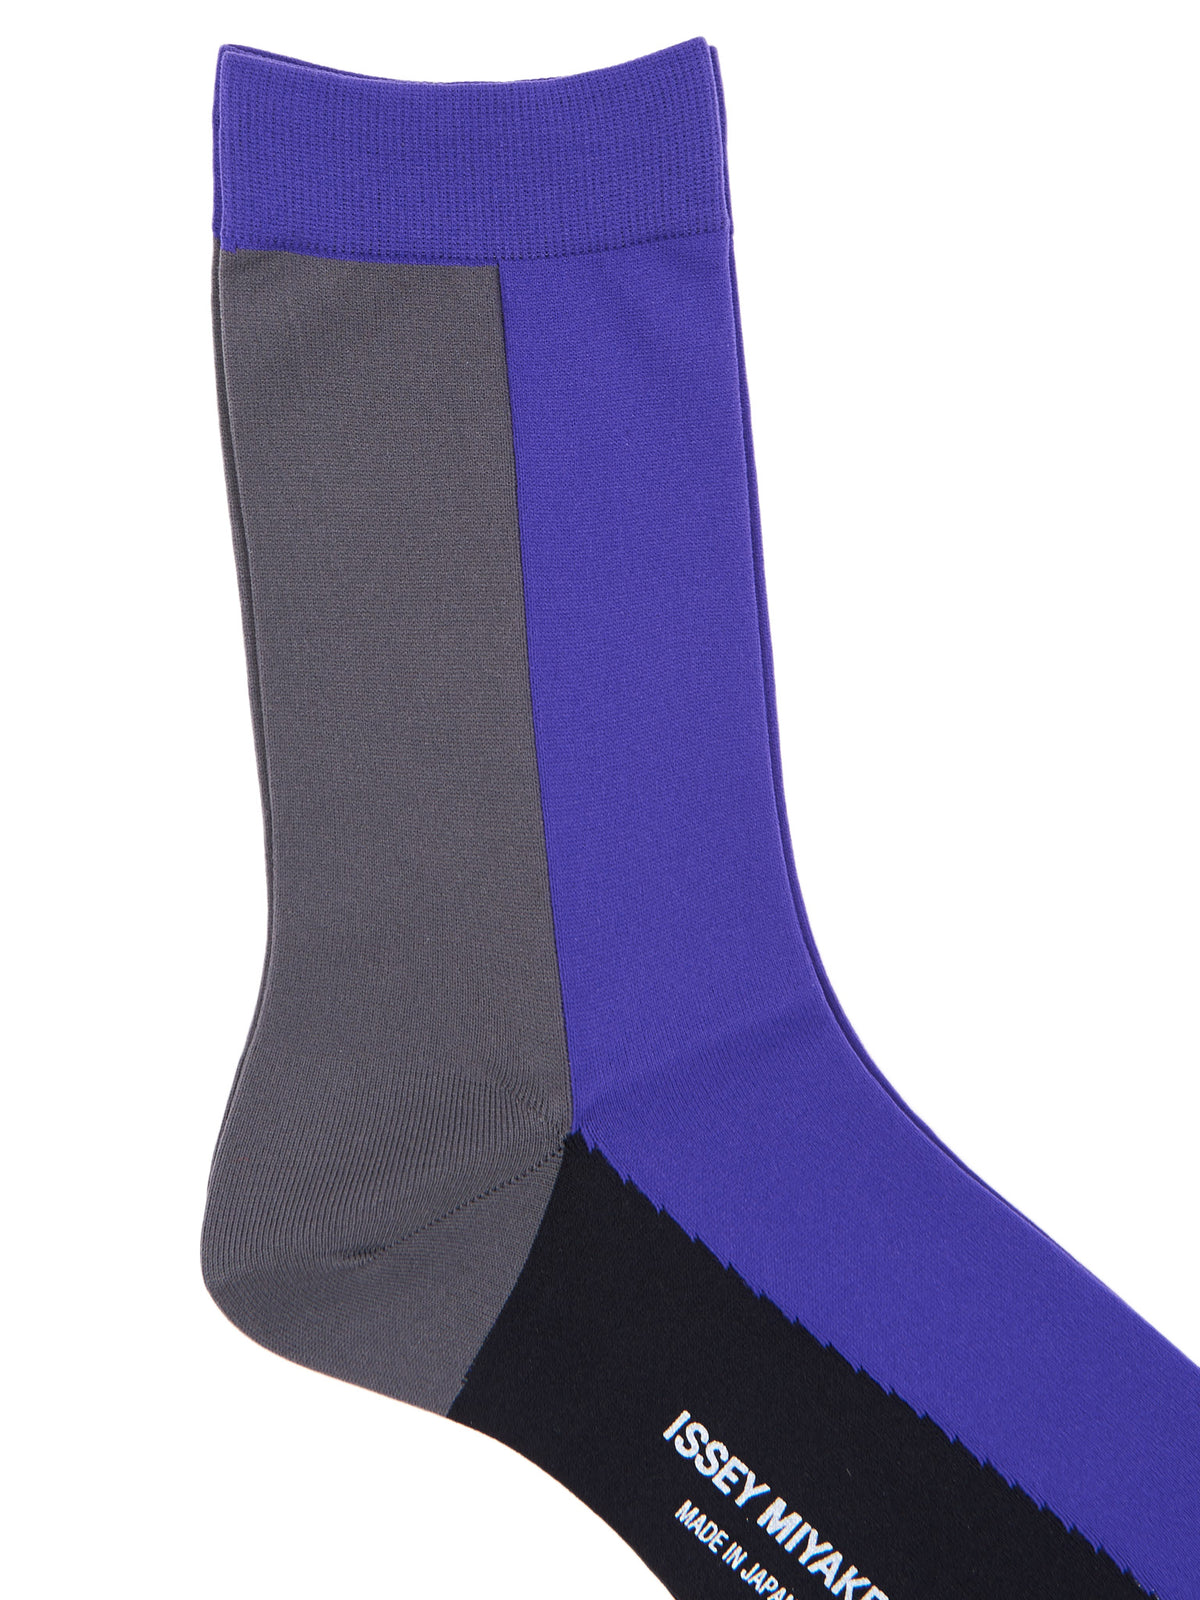 Cubic Socks (IM99AI403-PURPLE-BLACK)